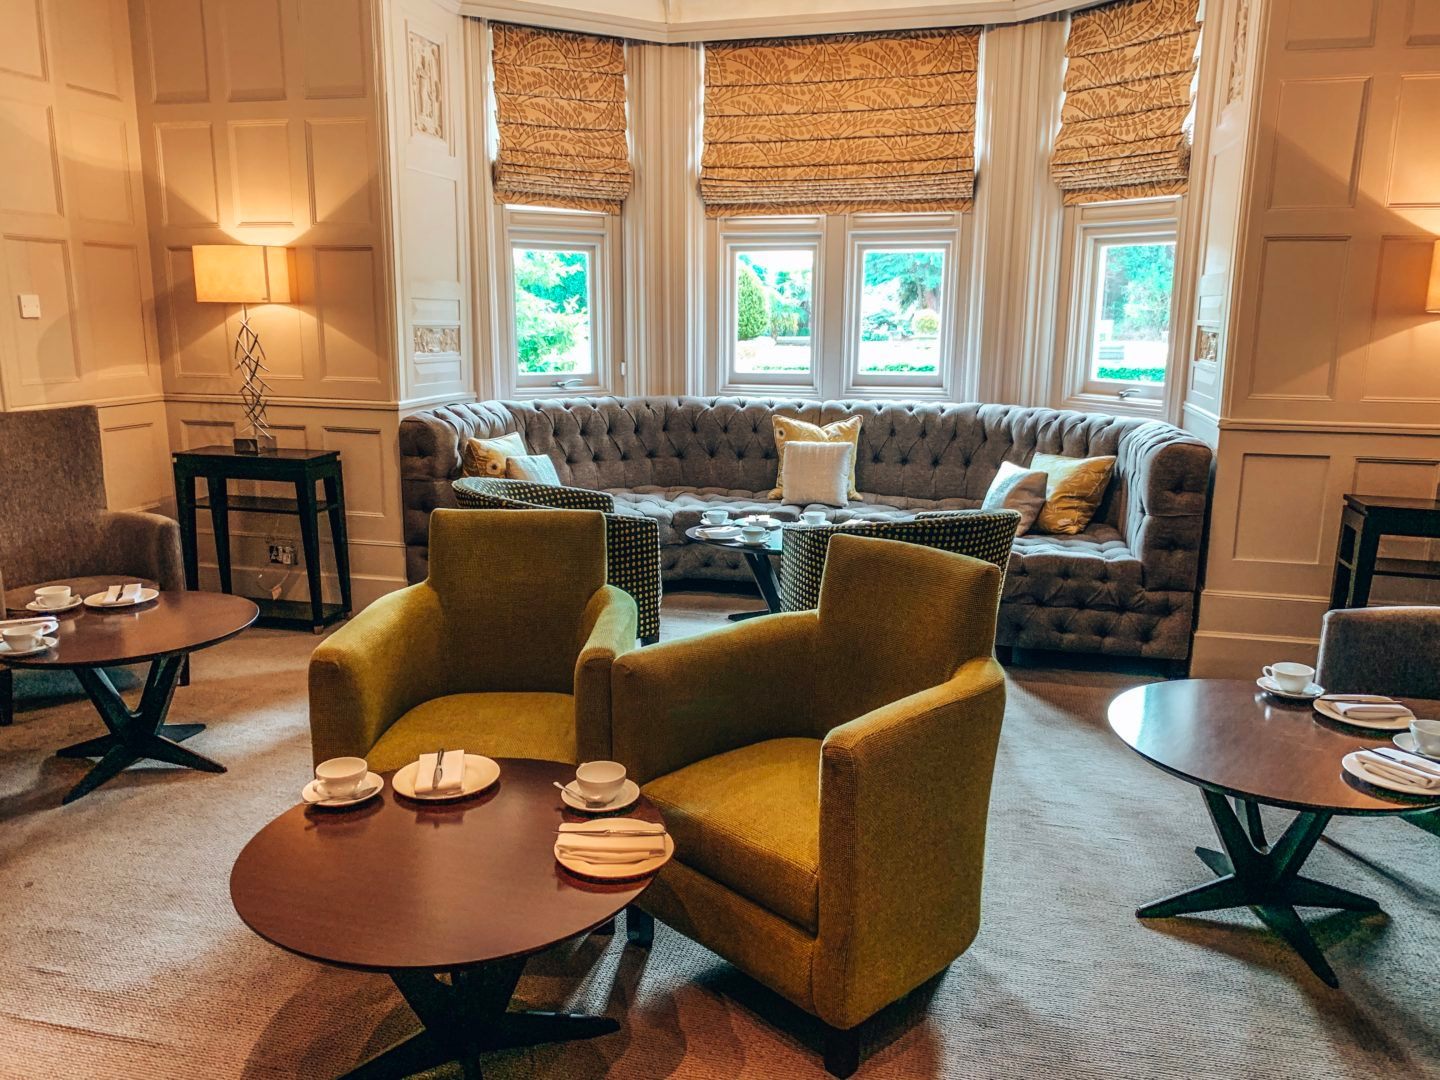 Alexander House | Luxury Five Star Hotel & Spa in West Sussex